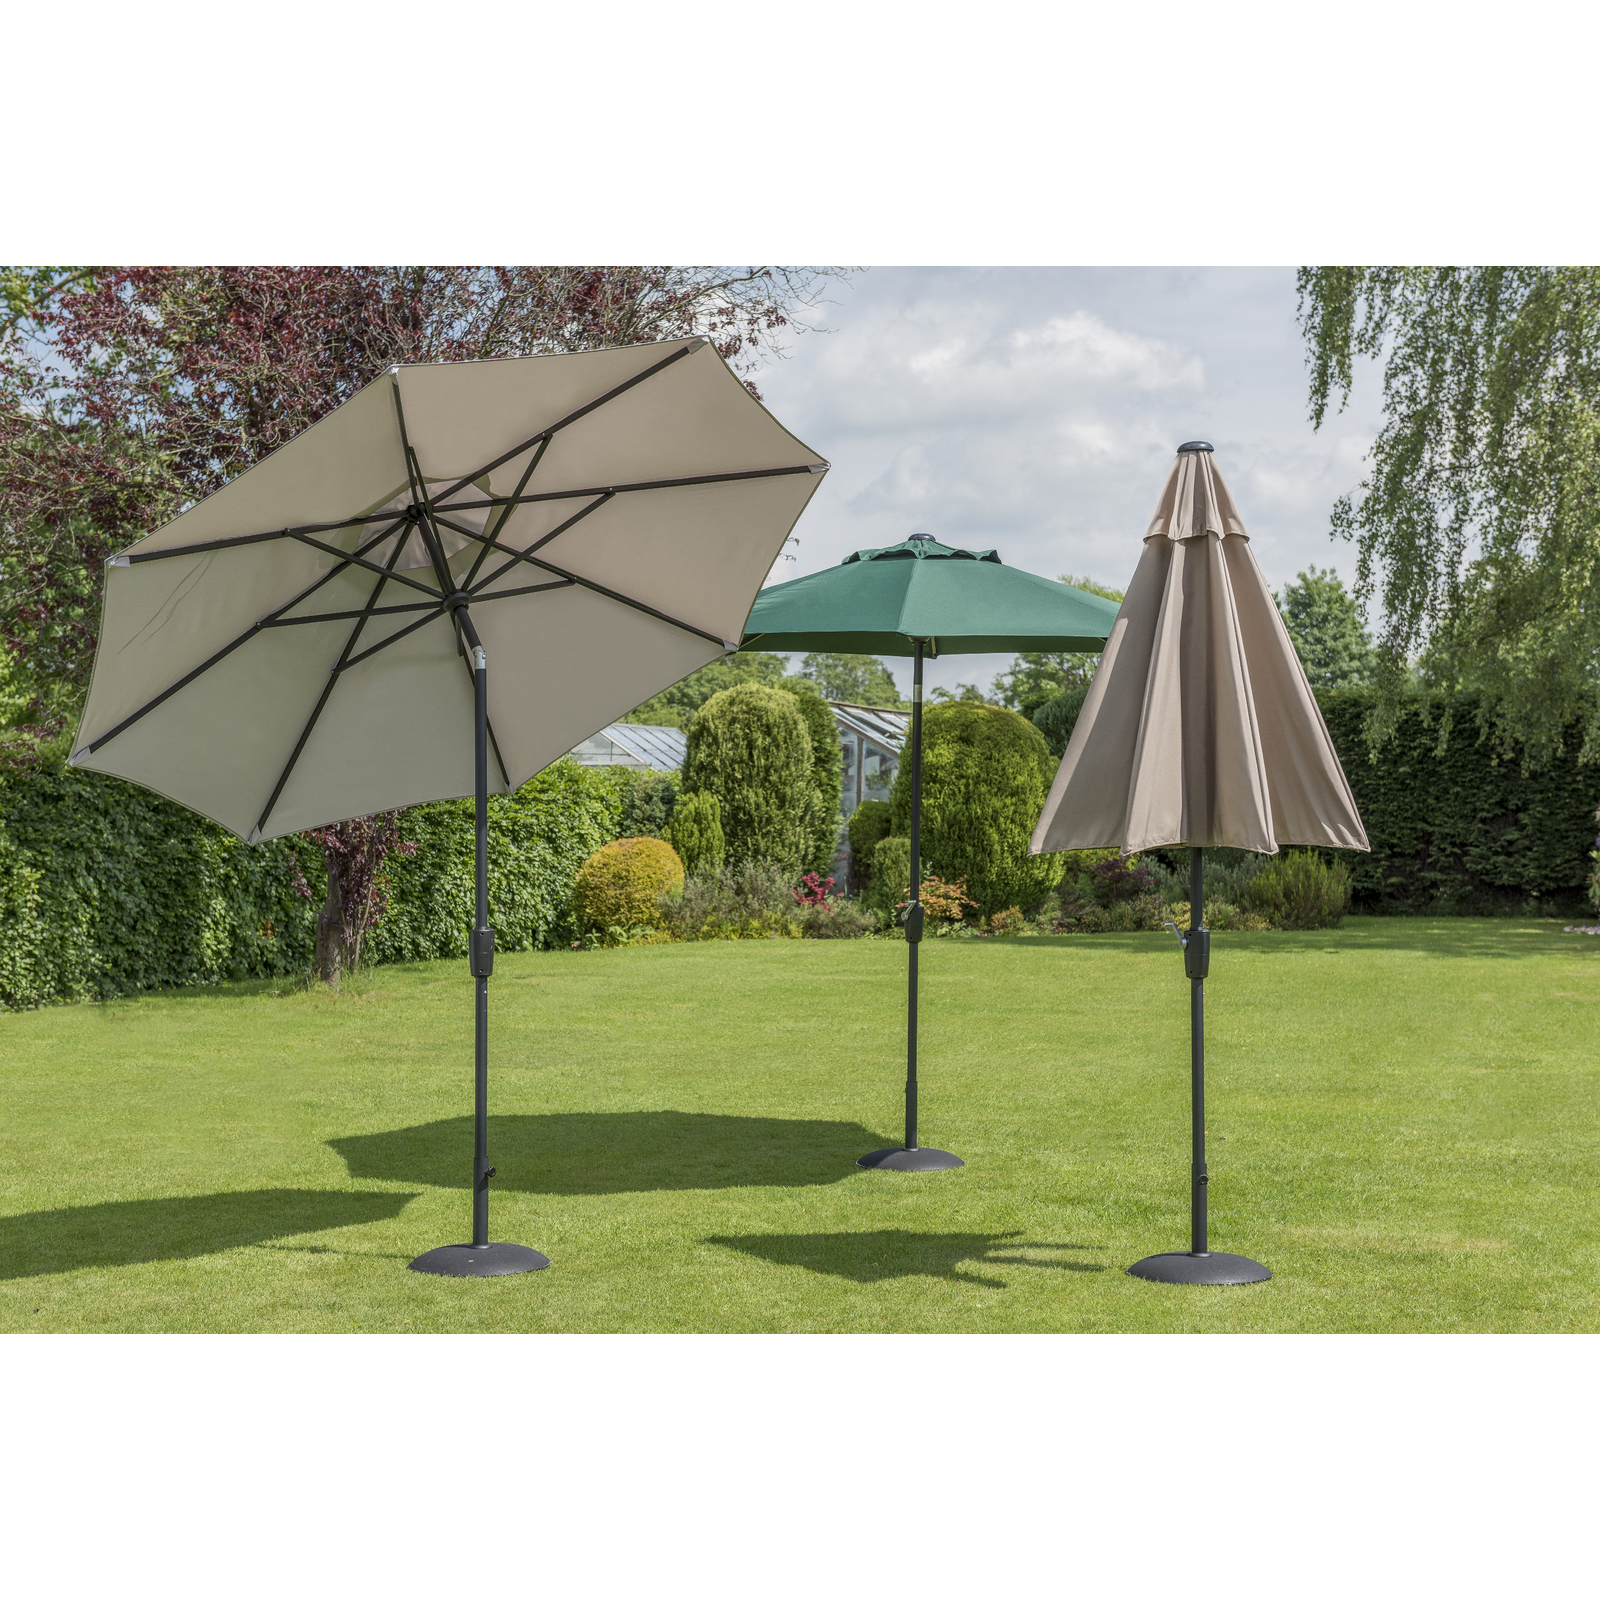 Garden Must Haves Elizabeth Green Parasol 2.7m